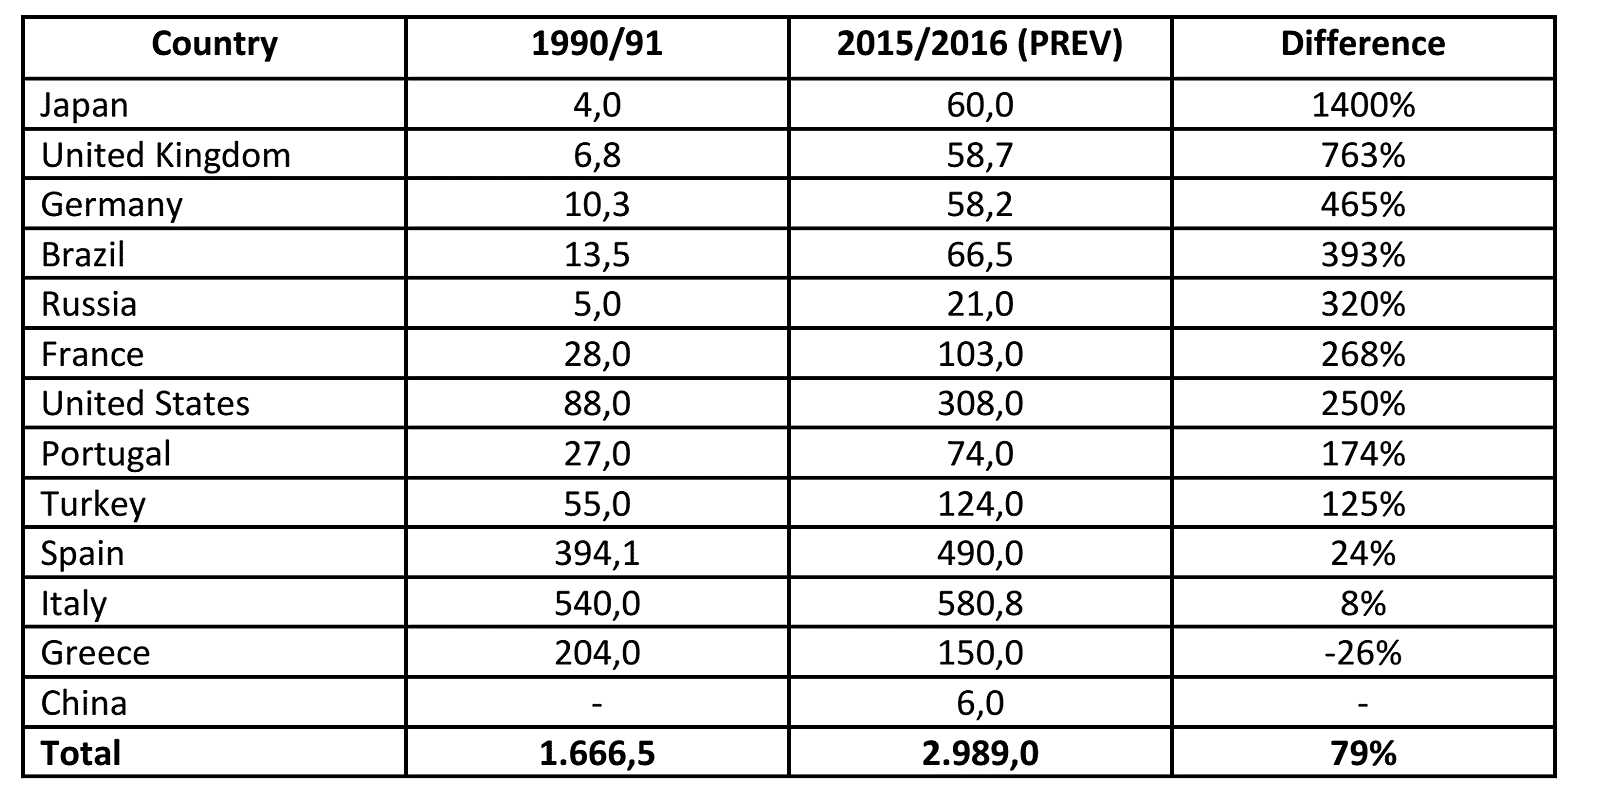 Table of Italian Olive Oil Exporters. Headings: Country, 1990/91, 2015/2016 (PREV), Difference, Japan, 4.0, 60.0, 1400%, United Kingdom, 6.8, 58.7, 763%, Germany, 10.3, 58.2, 465%, Brazil, 13.5, 66.5, 393%, Russia, 5.0, 21.0, 320%, France, 28.0, 103.0, 268%, United States, 88.0, 308.0, 250%, Portugal, 27.0, 74.0, 174%, Turkey, 55.0, 124.0, 125%, Spain, 394.1, 490.0, 24%, Italy, 540.0, 580.8, 8%, Greece, 204.0, 150.0, -26%, China, Blank, 6.0, Blank, Total, 1666.5, 2989.0, 79%